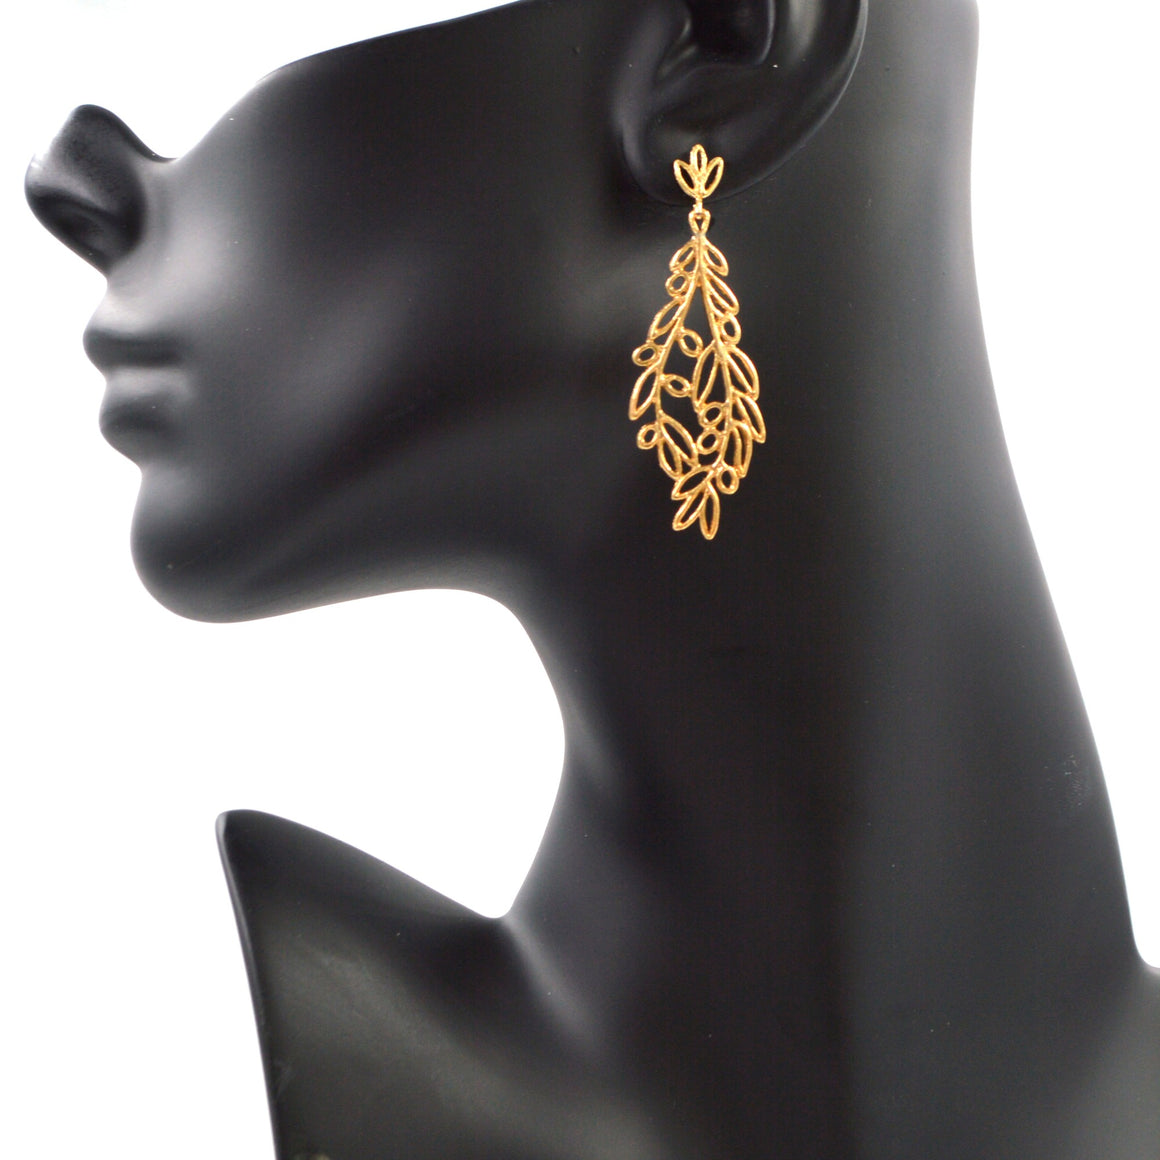 Olive Branch Post Earrings - 24K Gold Plated